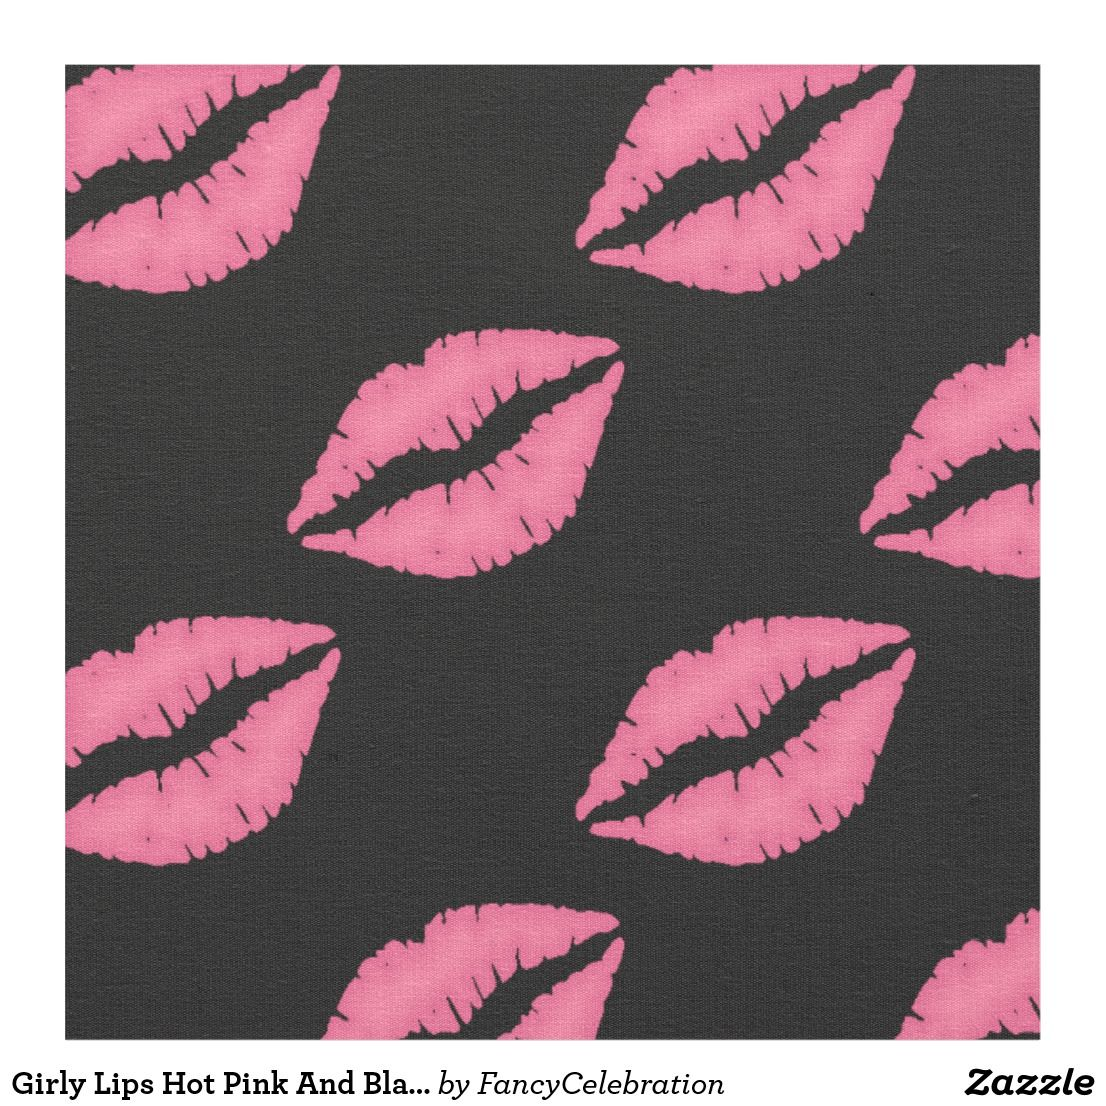 Girly Lips Hot Pink And Black Kiss Pattern Fabric in 2020